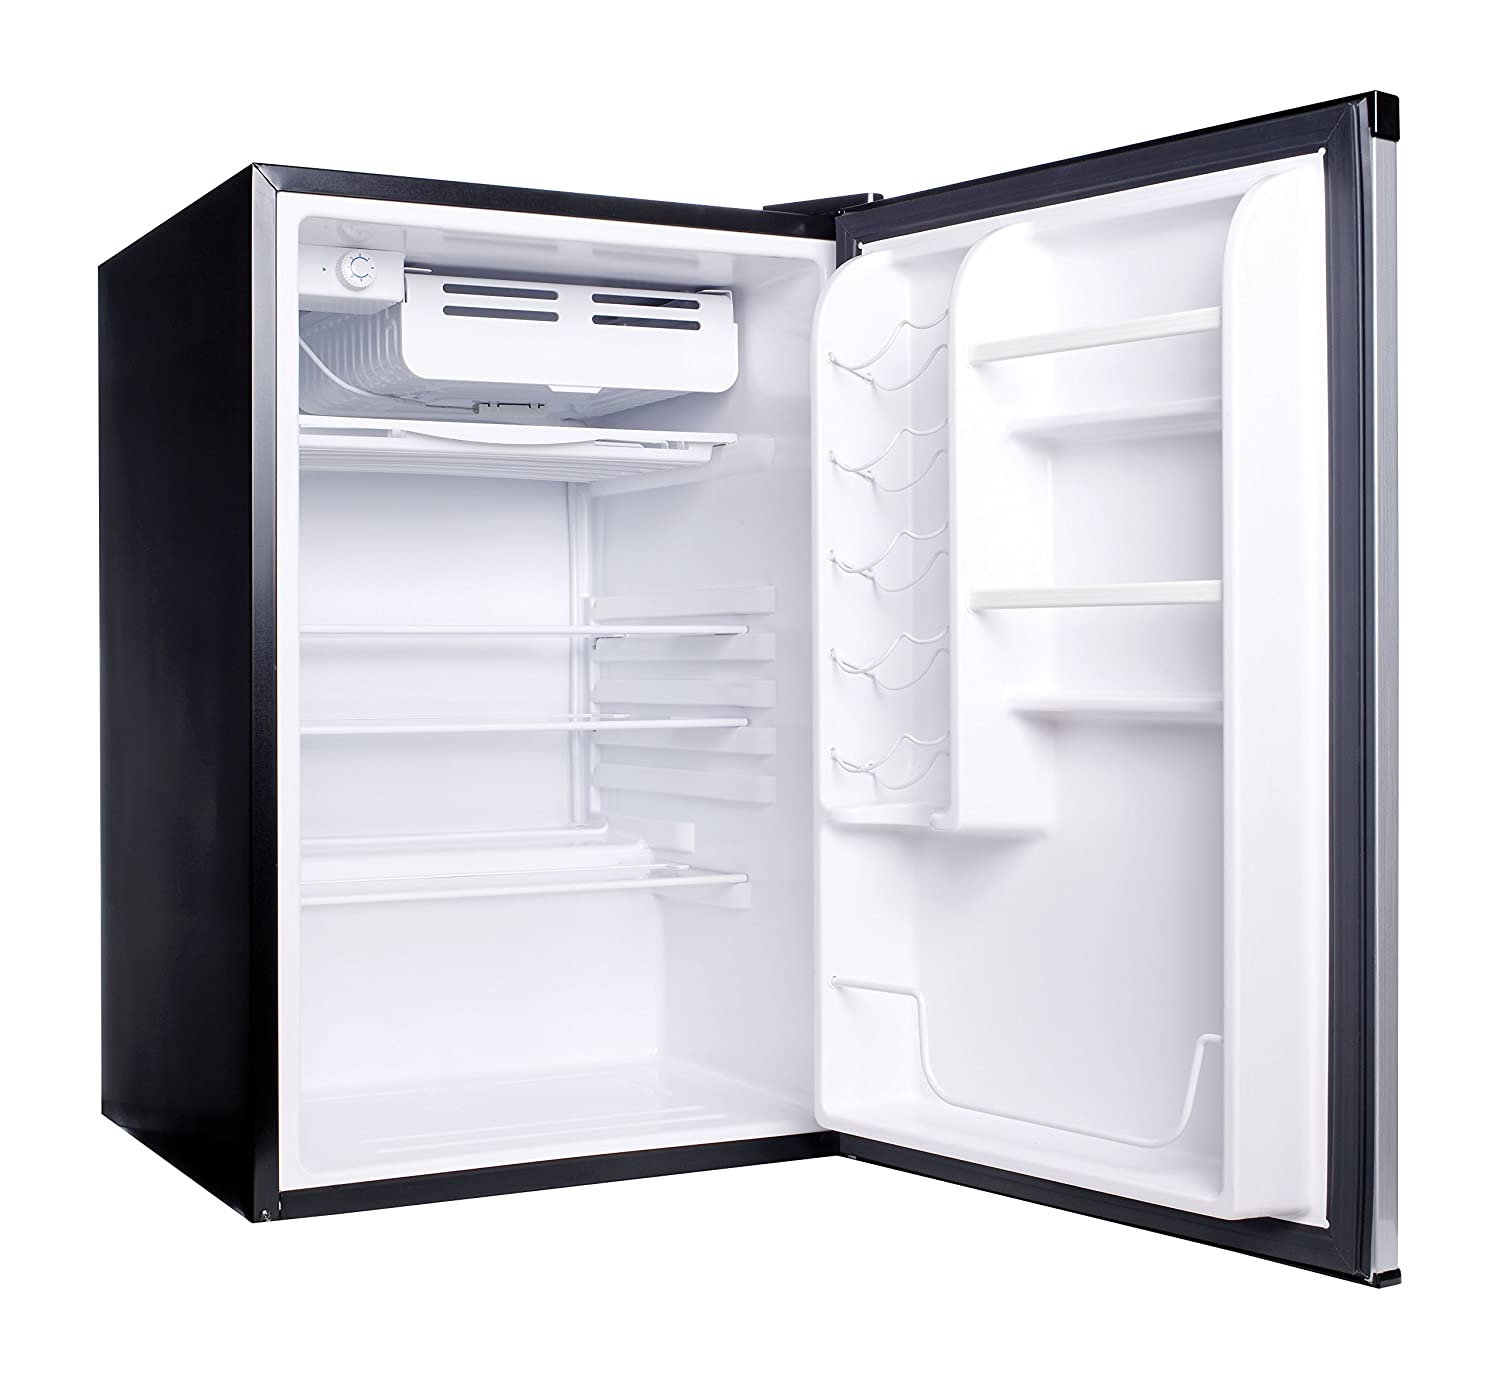 refrigerator 7 5 cu ft. amazon.com: haier hc45sg42sv 4.5 cubic feet refrigerator/freezer, white interior, vcm door: appliances refrigerator 7 5 cu ft i